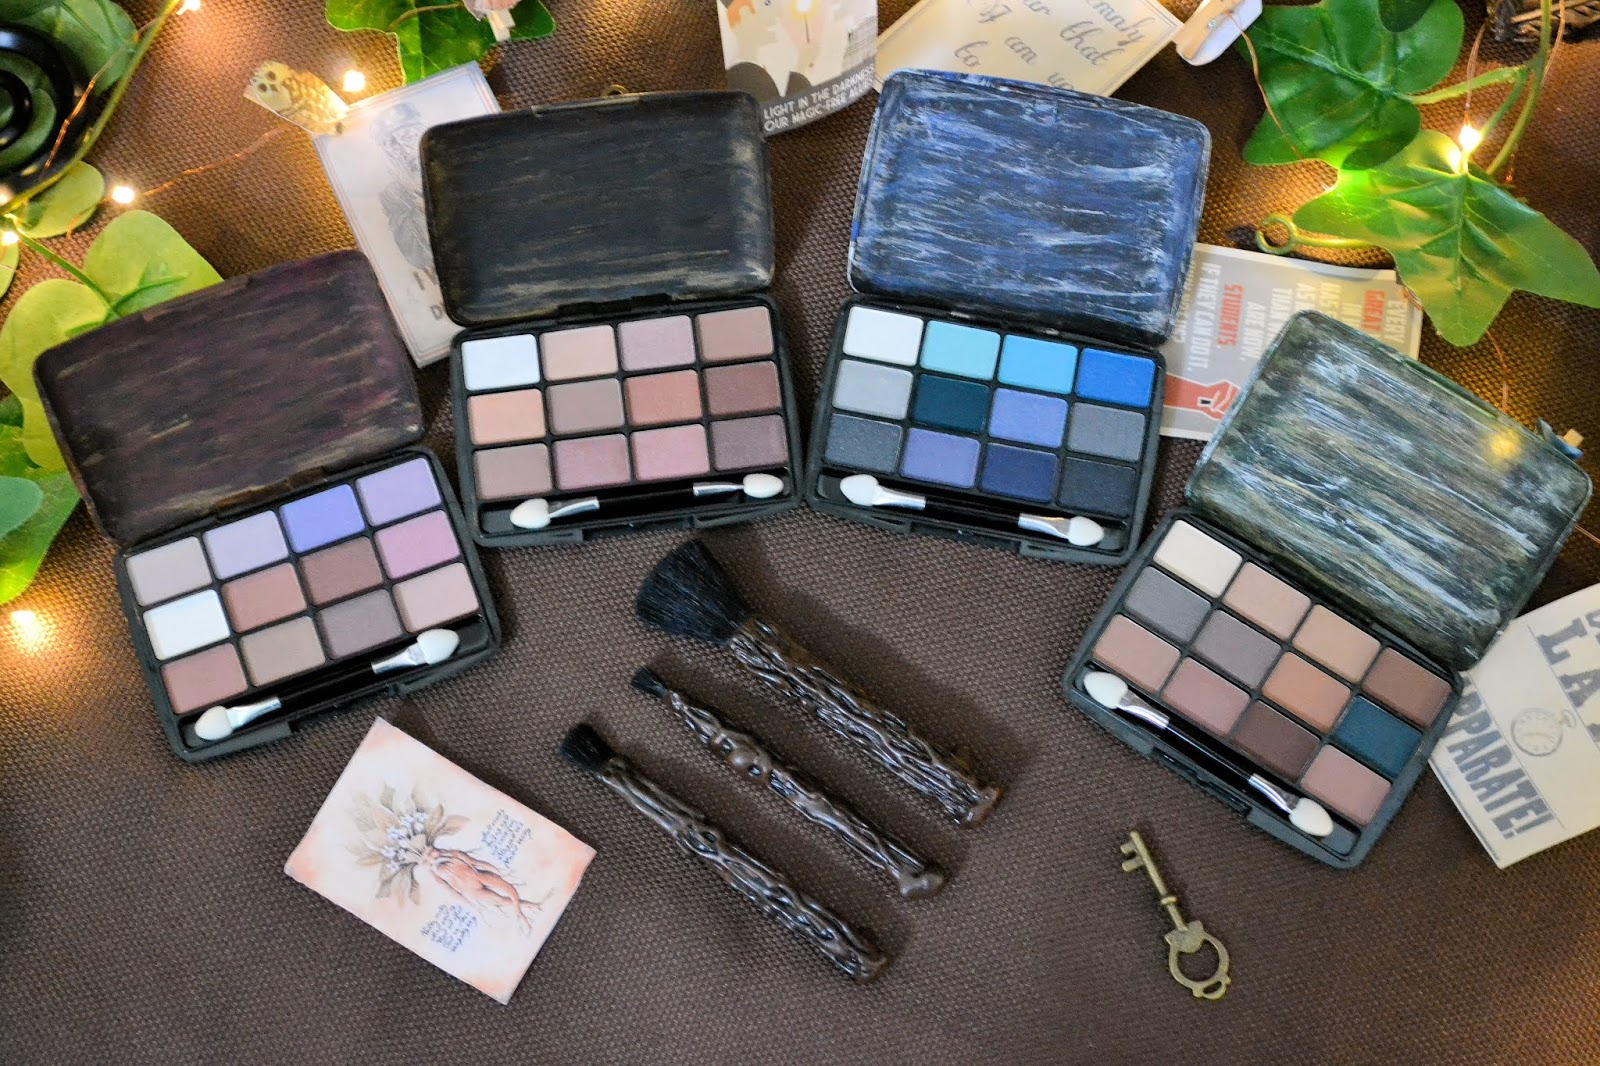 Harry Potter Style Hogwarts House Makeup Palettes